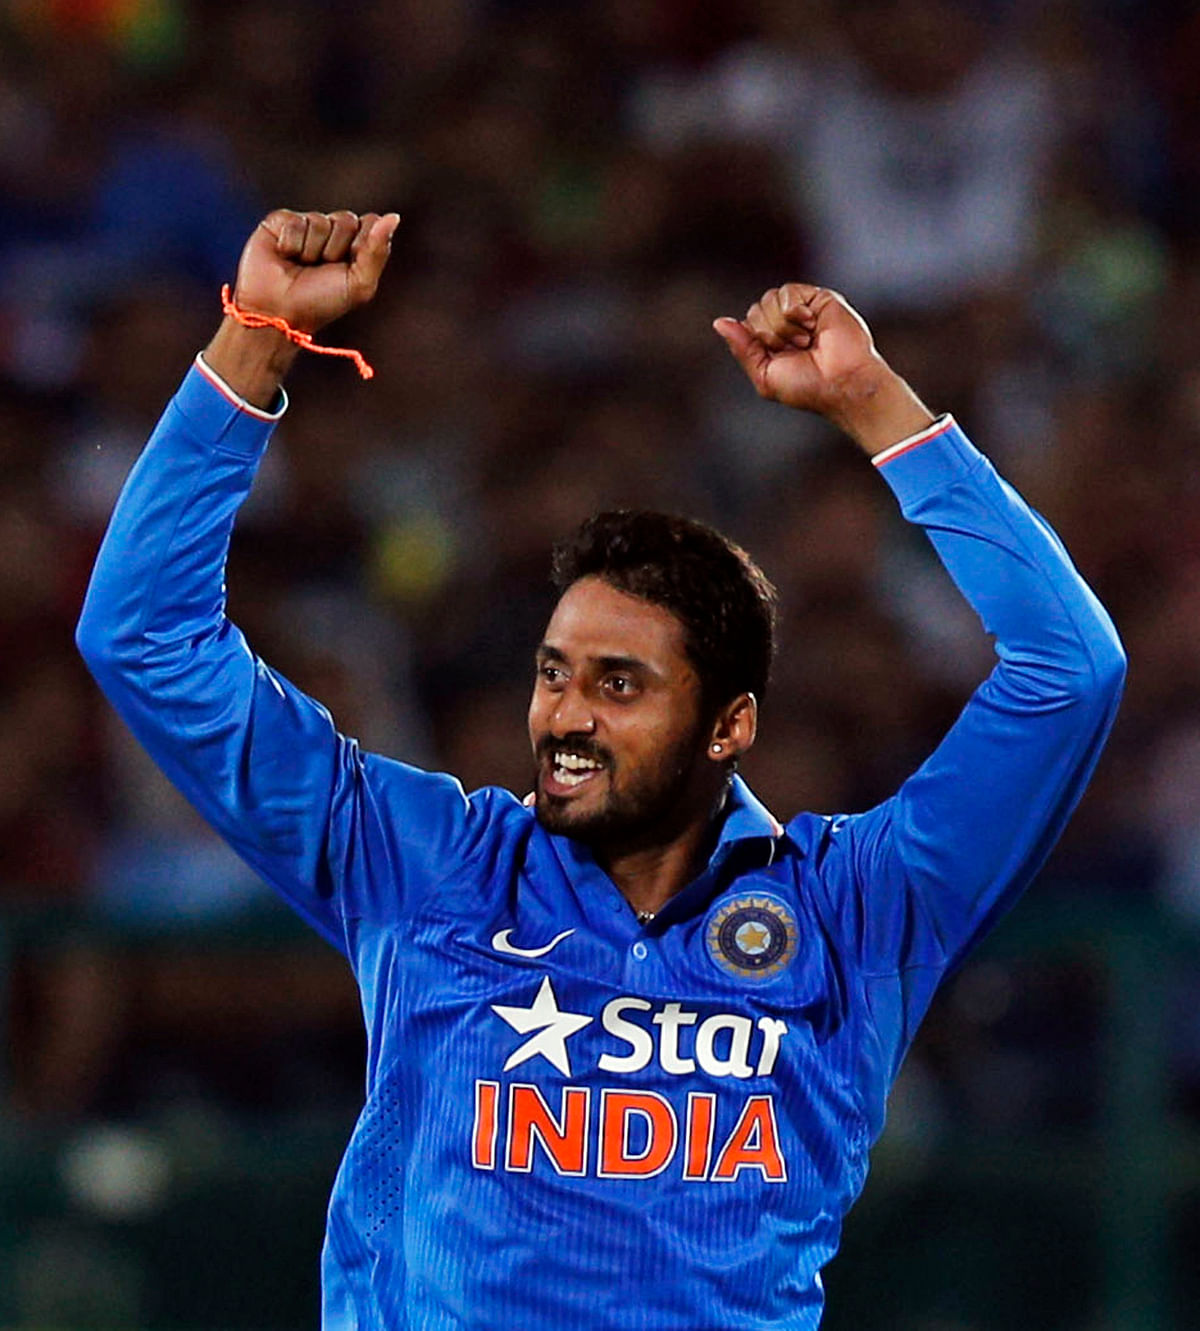 S Aravind made his debut for India on 2nd October in a T20 game vs SA. (Photo: AP)